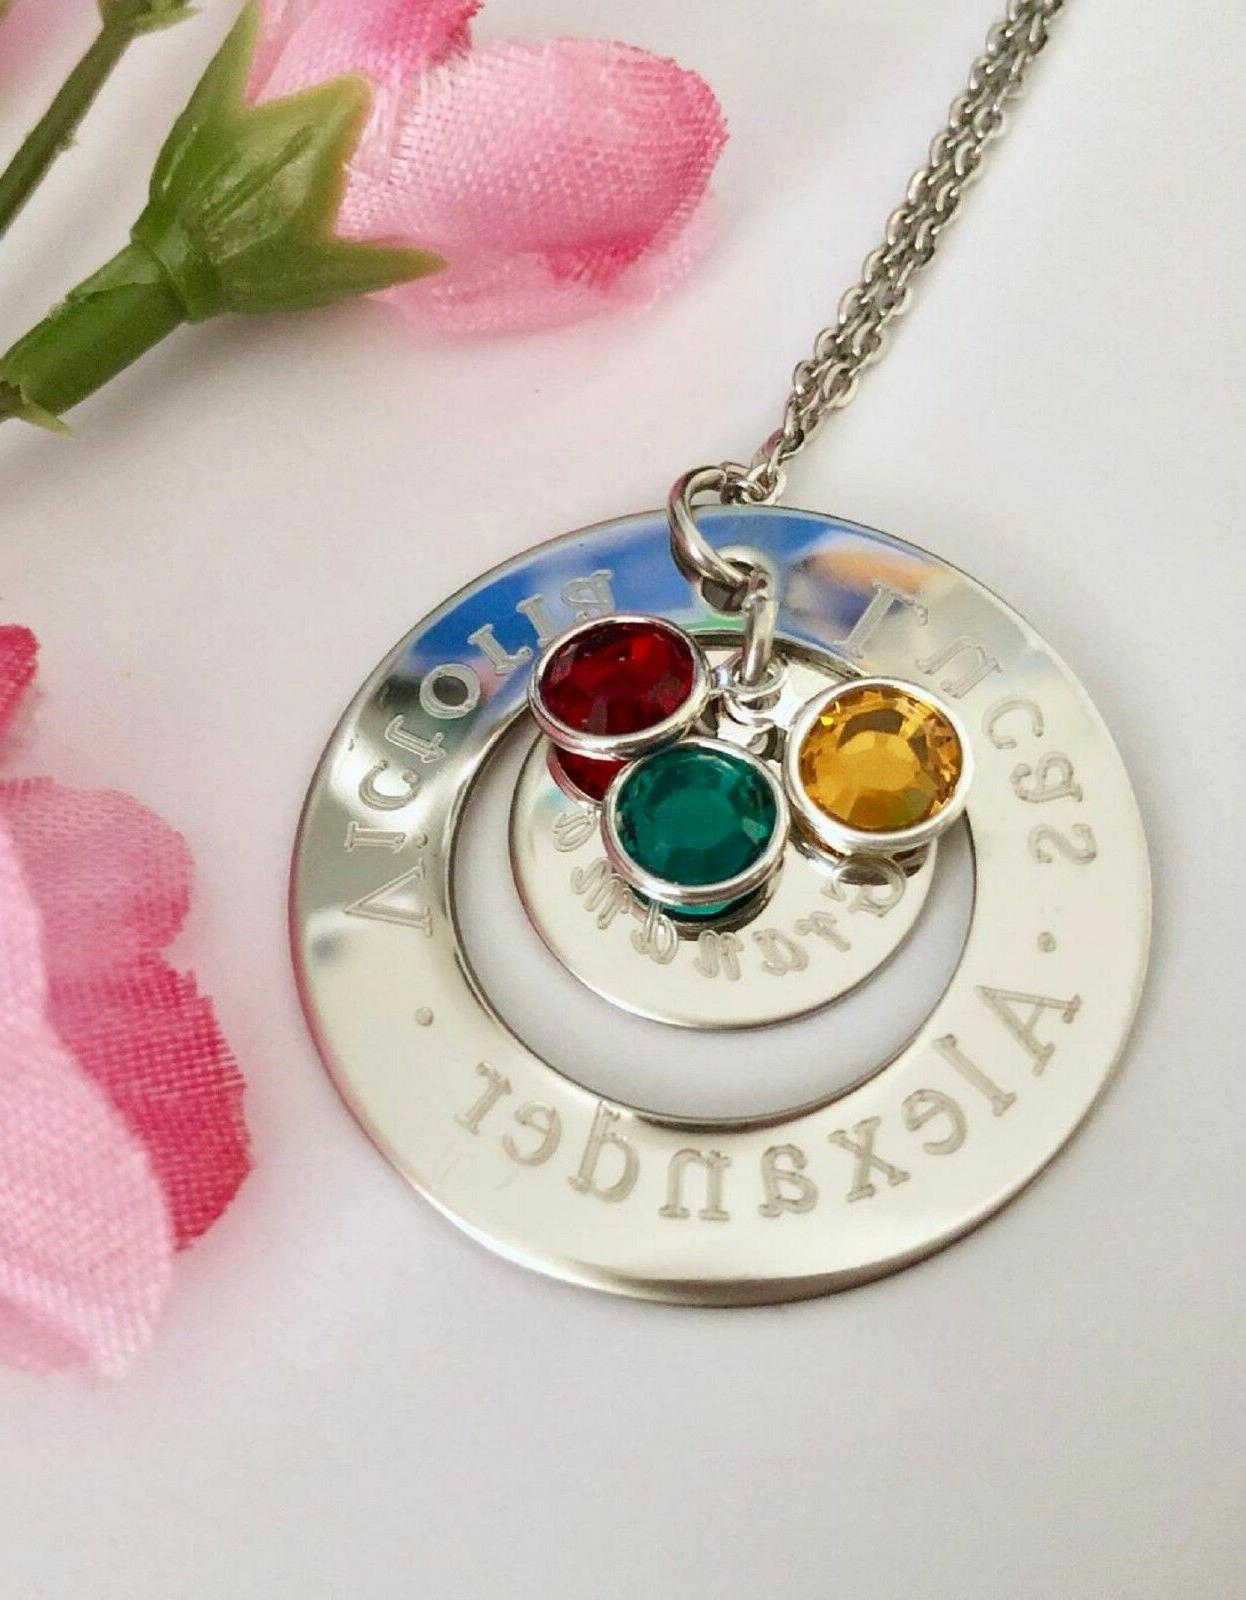 Personalized stainless Necklace Gift Grandma/mom/nana